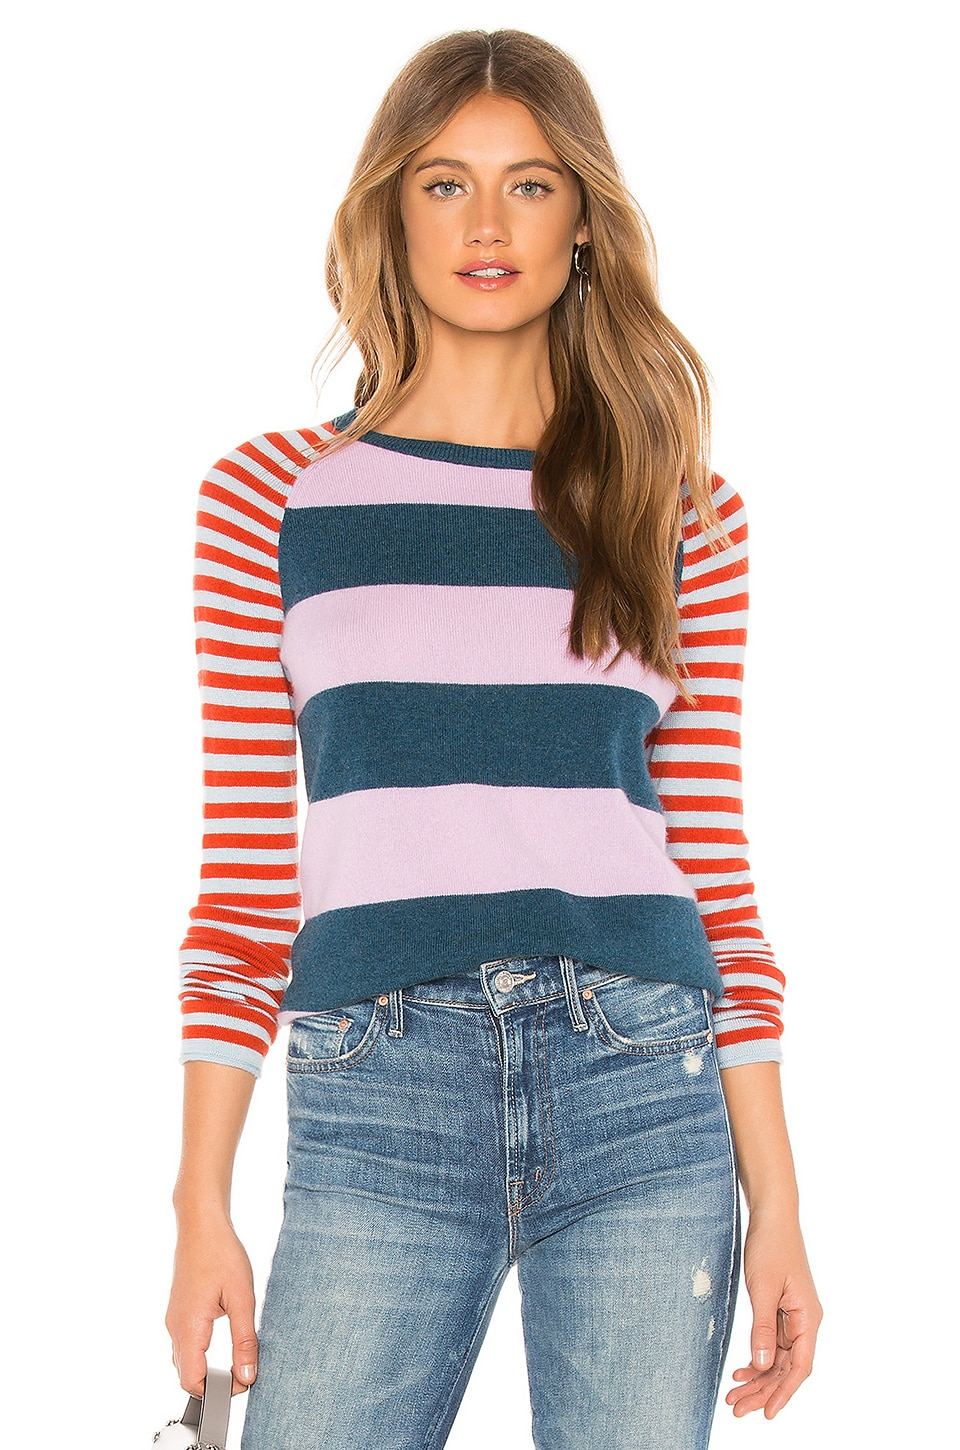 REPLICA LOS ANGELES Mix Stripe Sweater in Purple